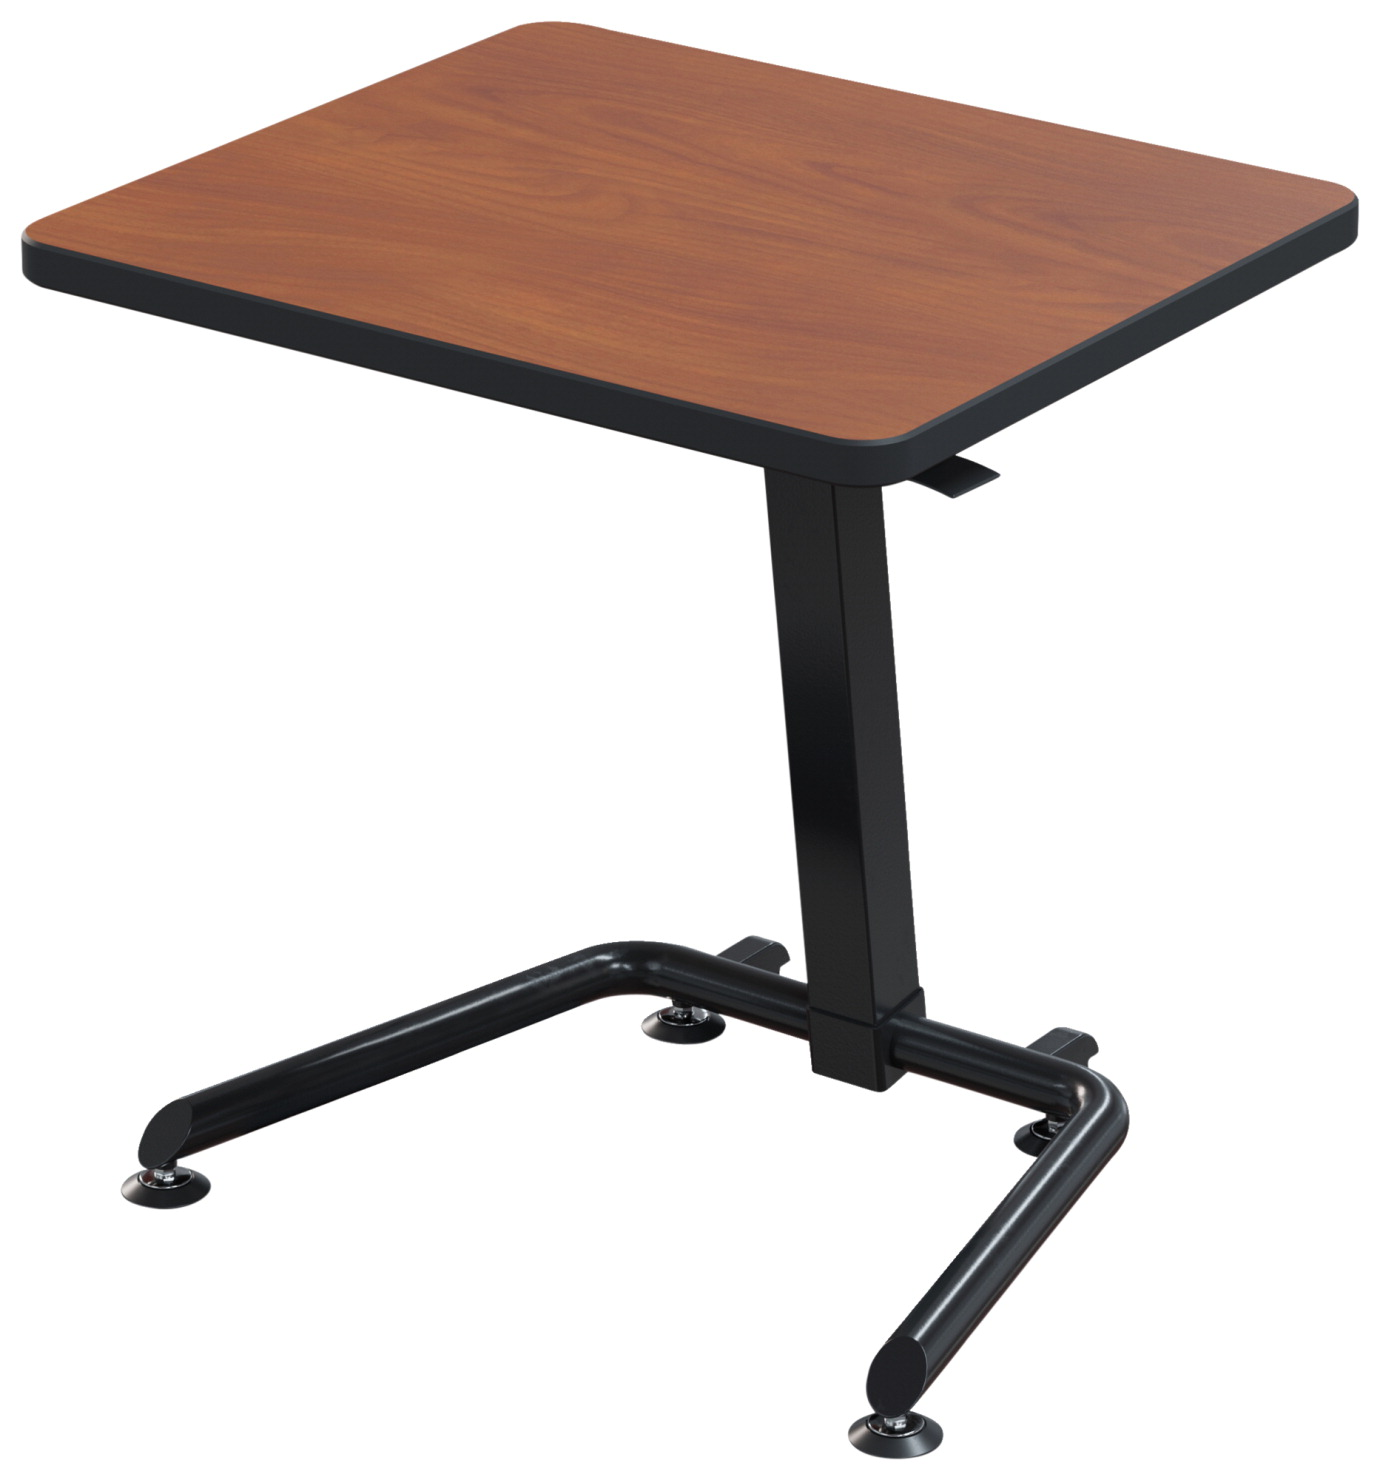 Classroom Select Bond Height Adjustable Desk, Laminate Top, Black Frame, Various Options